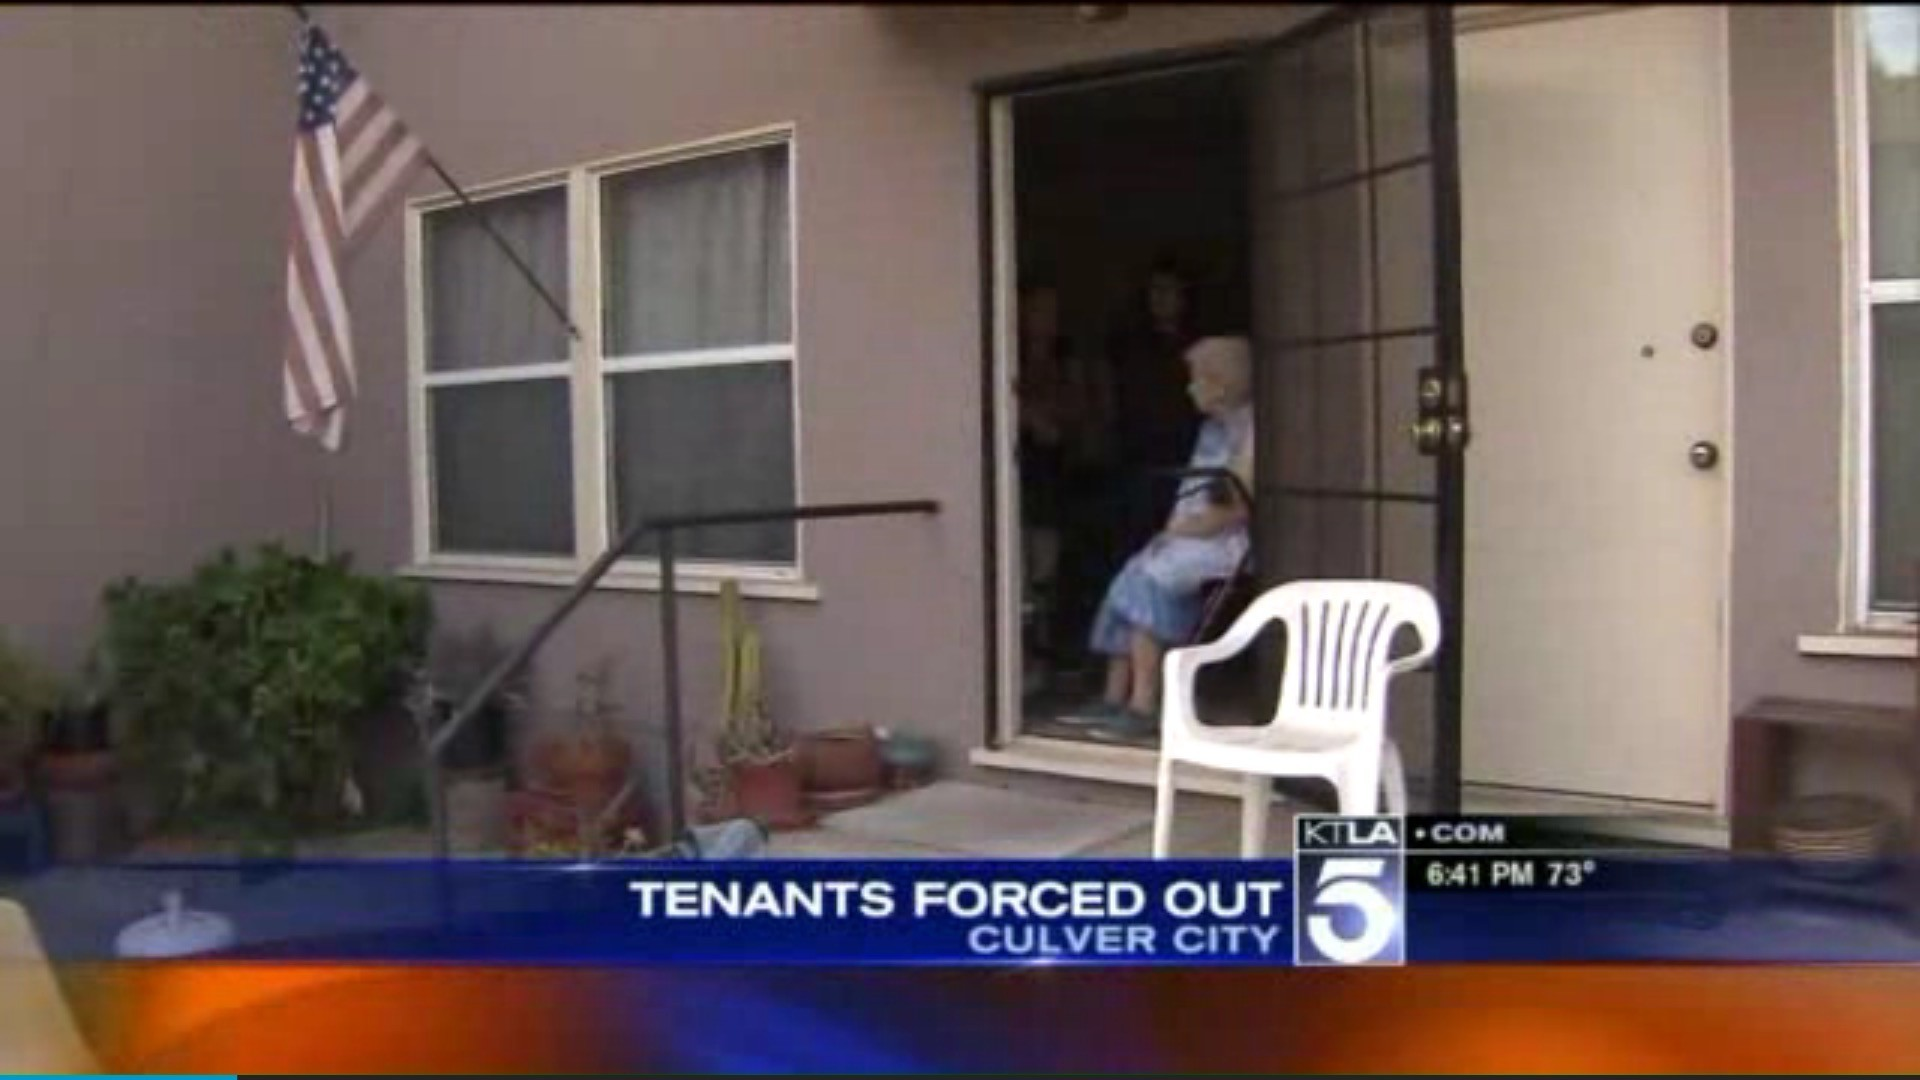 new owner of culver city apartment building issues eviction notices